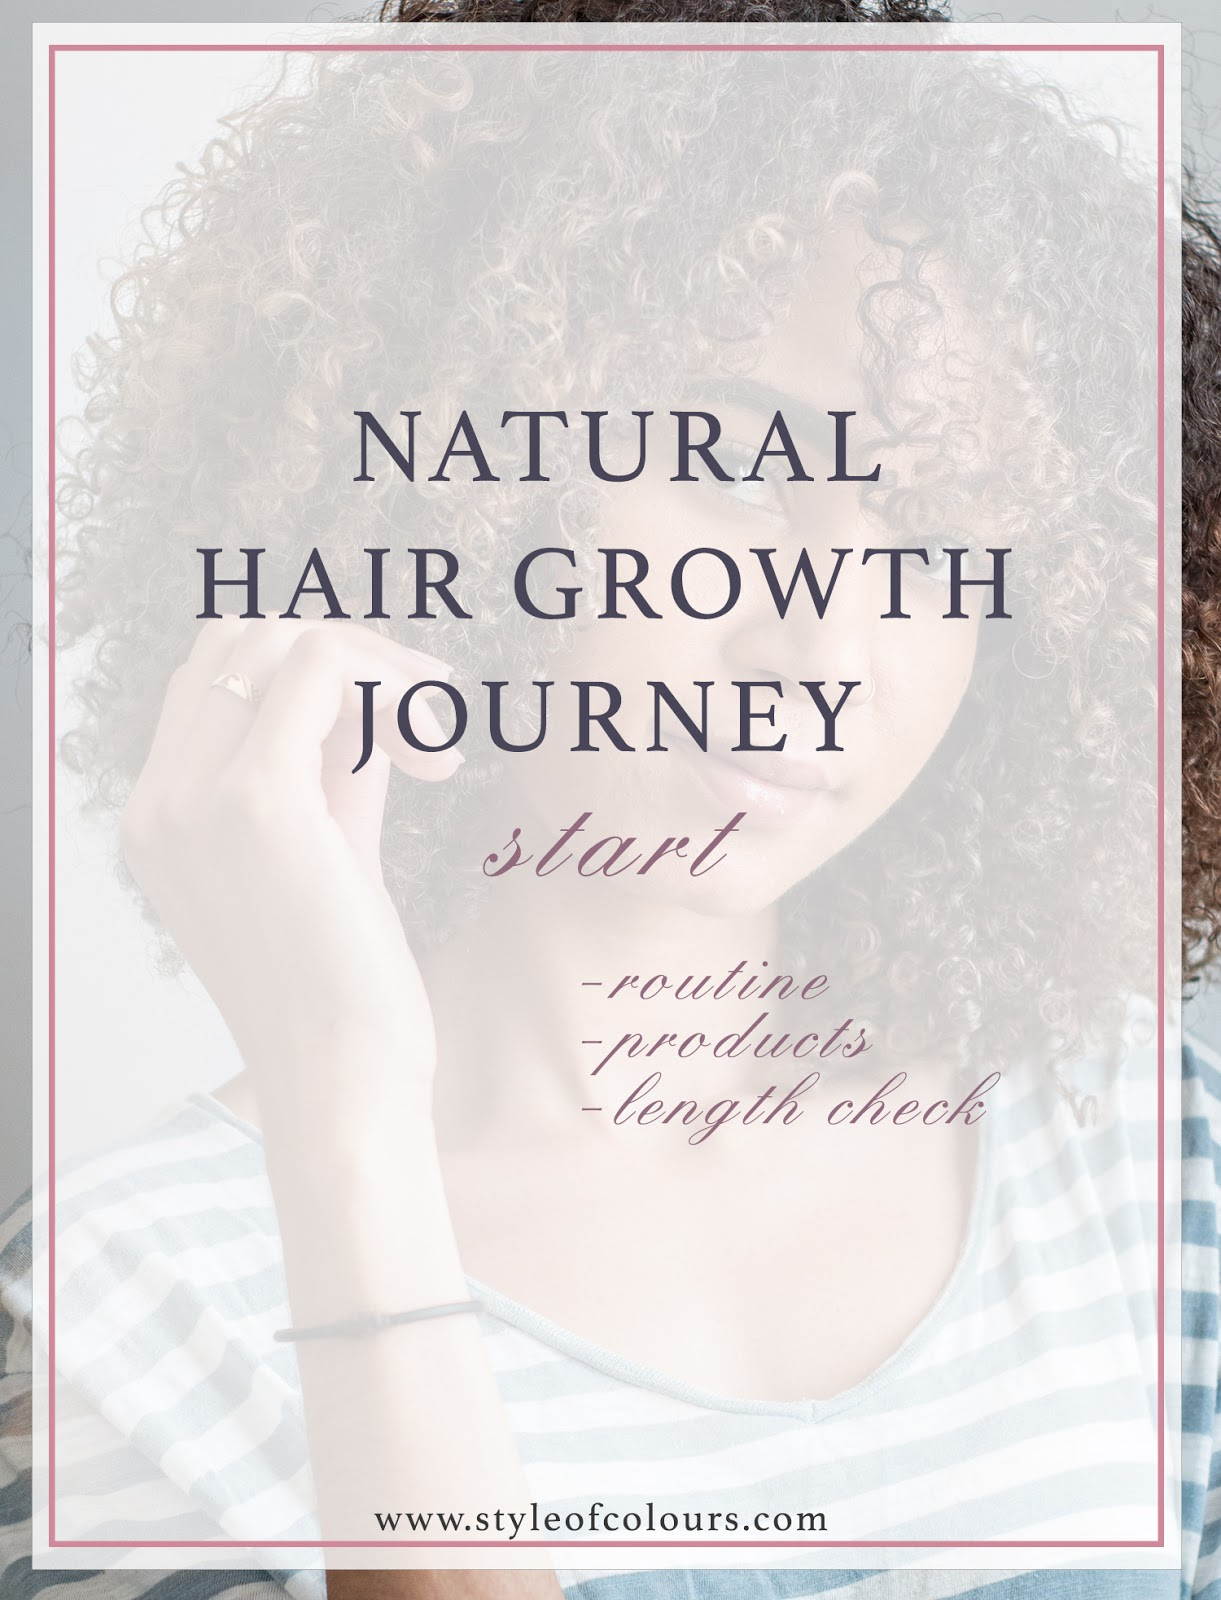 Natural Hair Growth Journey: Length Check, Products and more